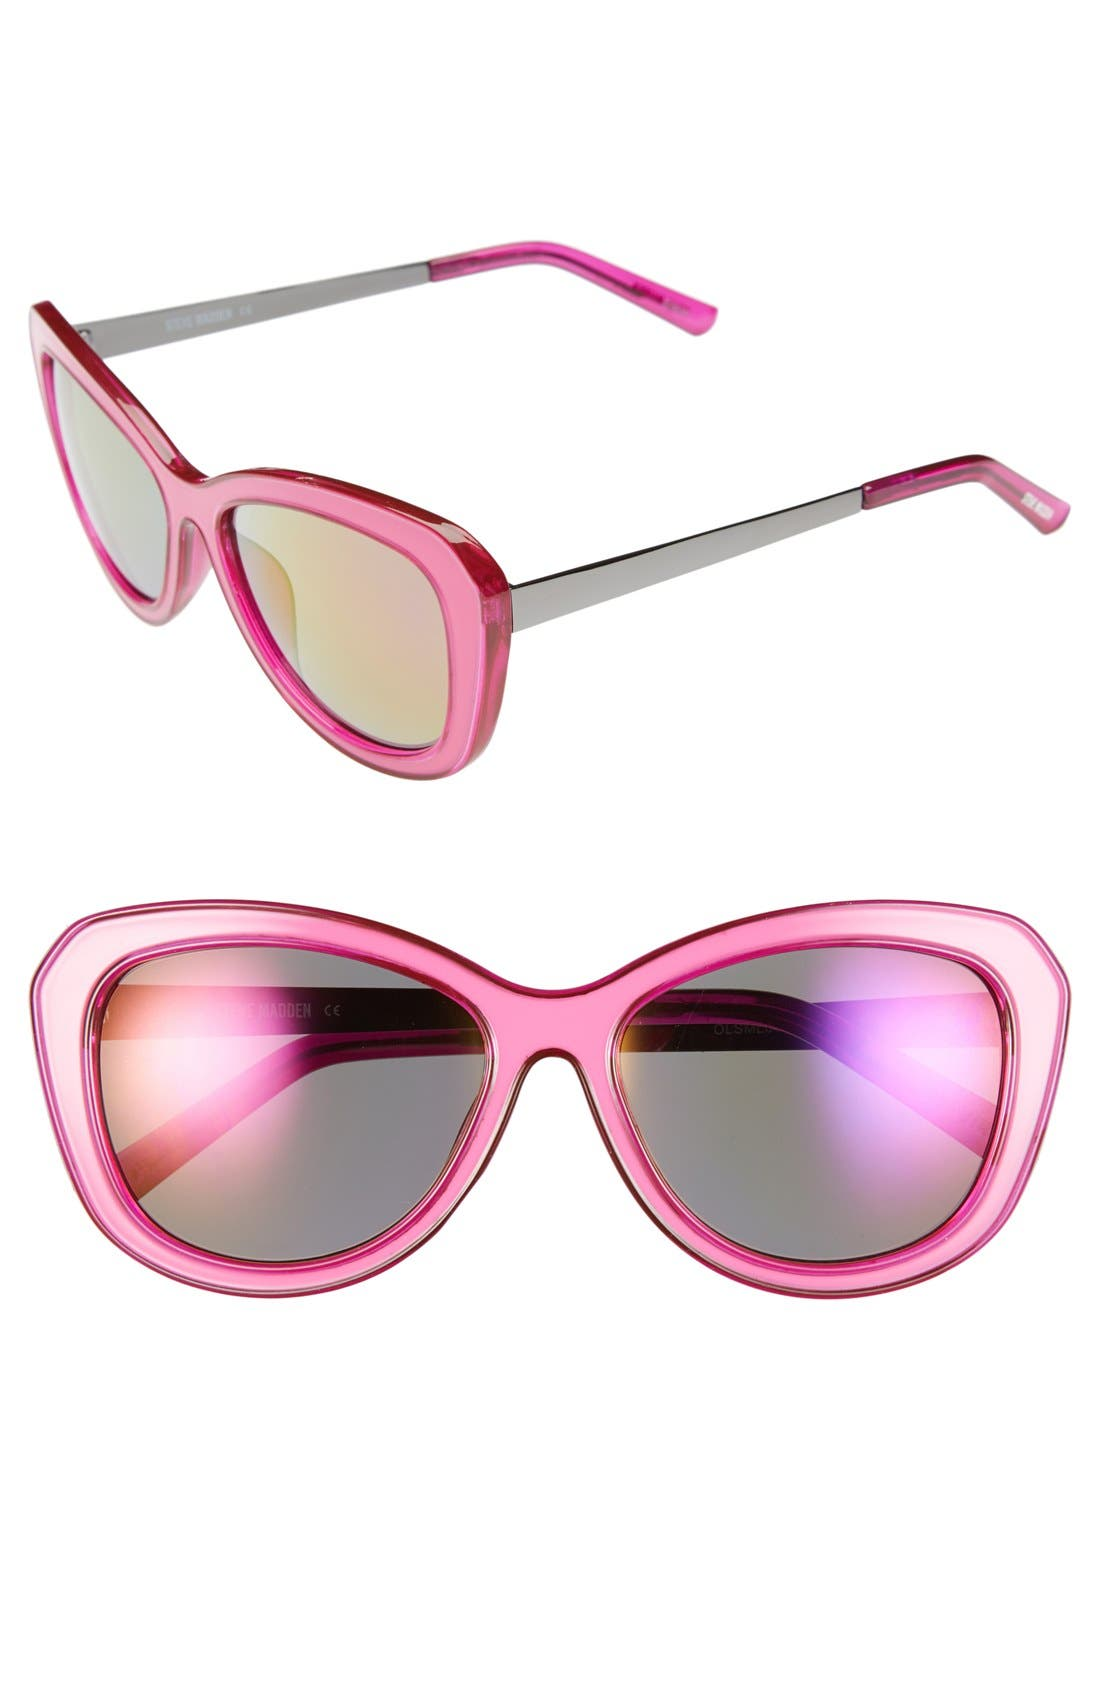 Main Image - Steve Madden 53mm Polarized Cat Eye Sunglasses